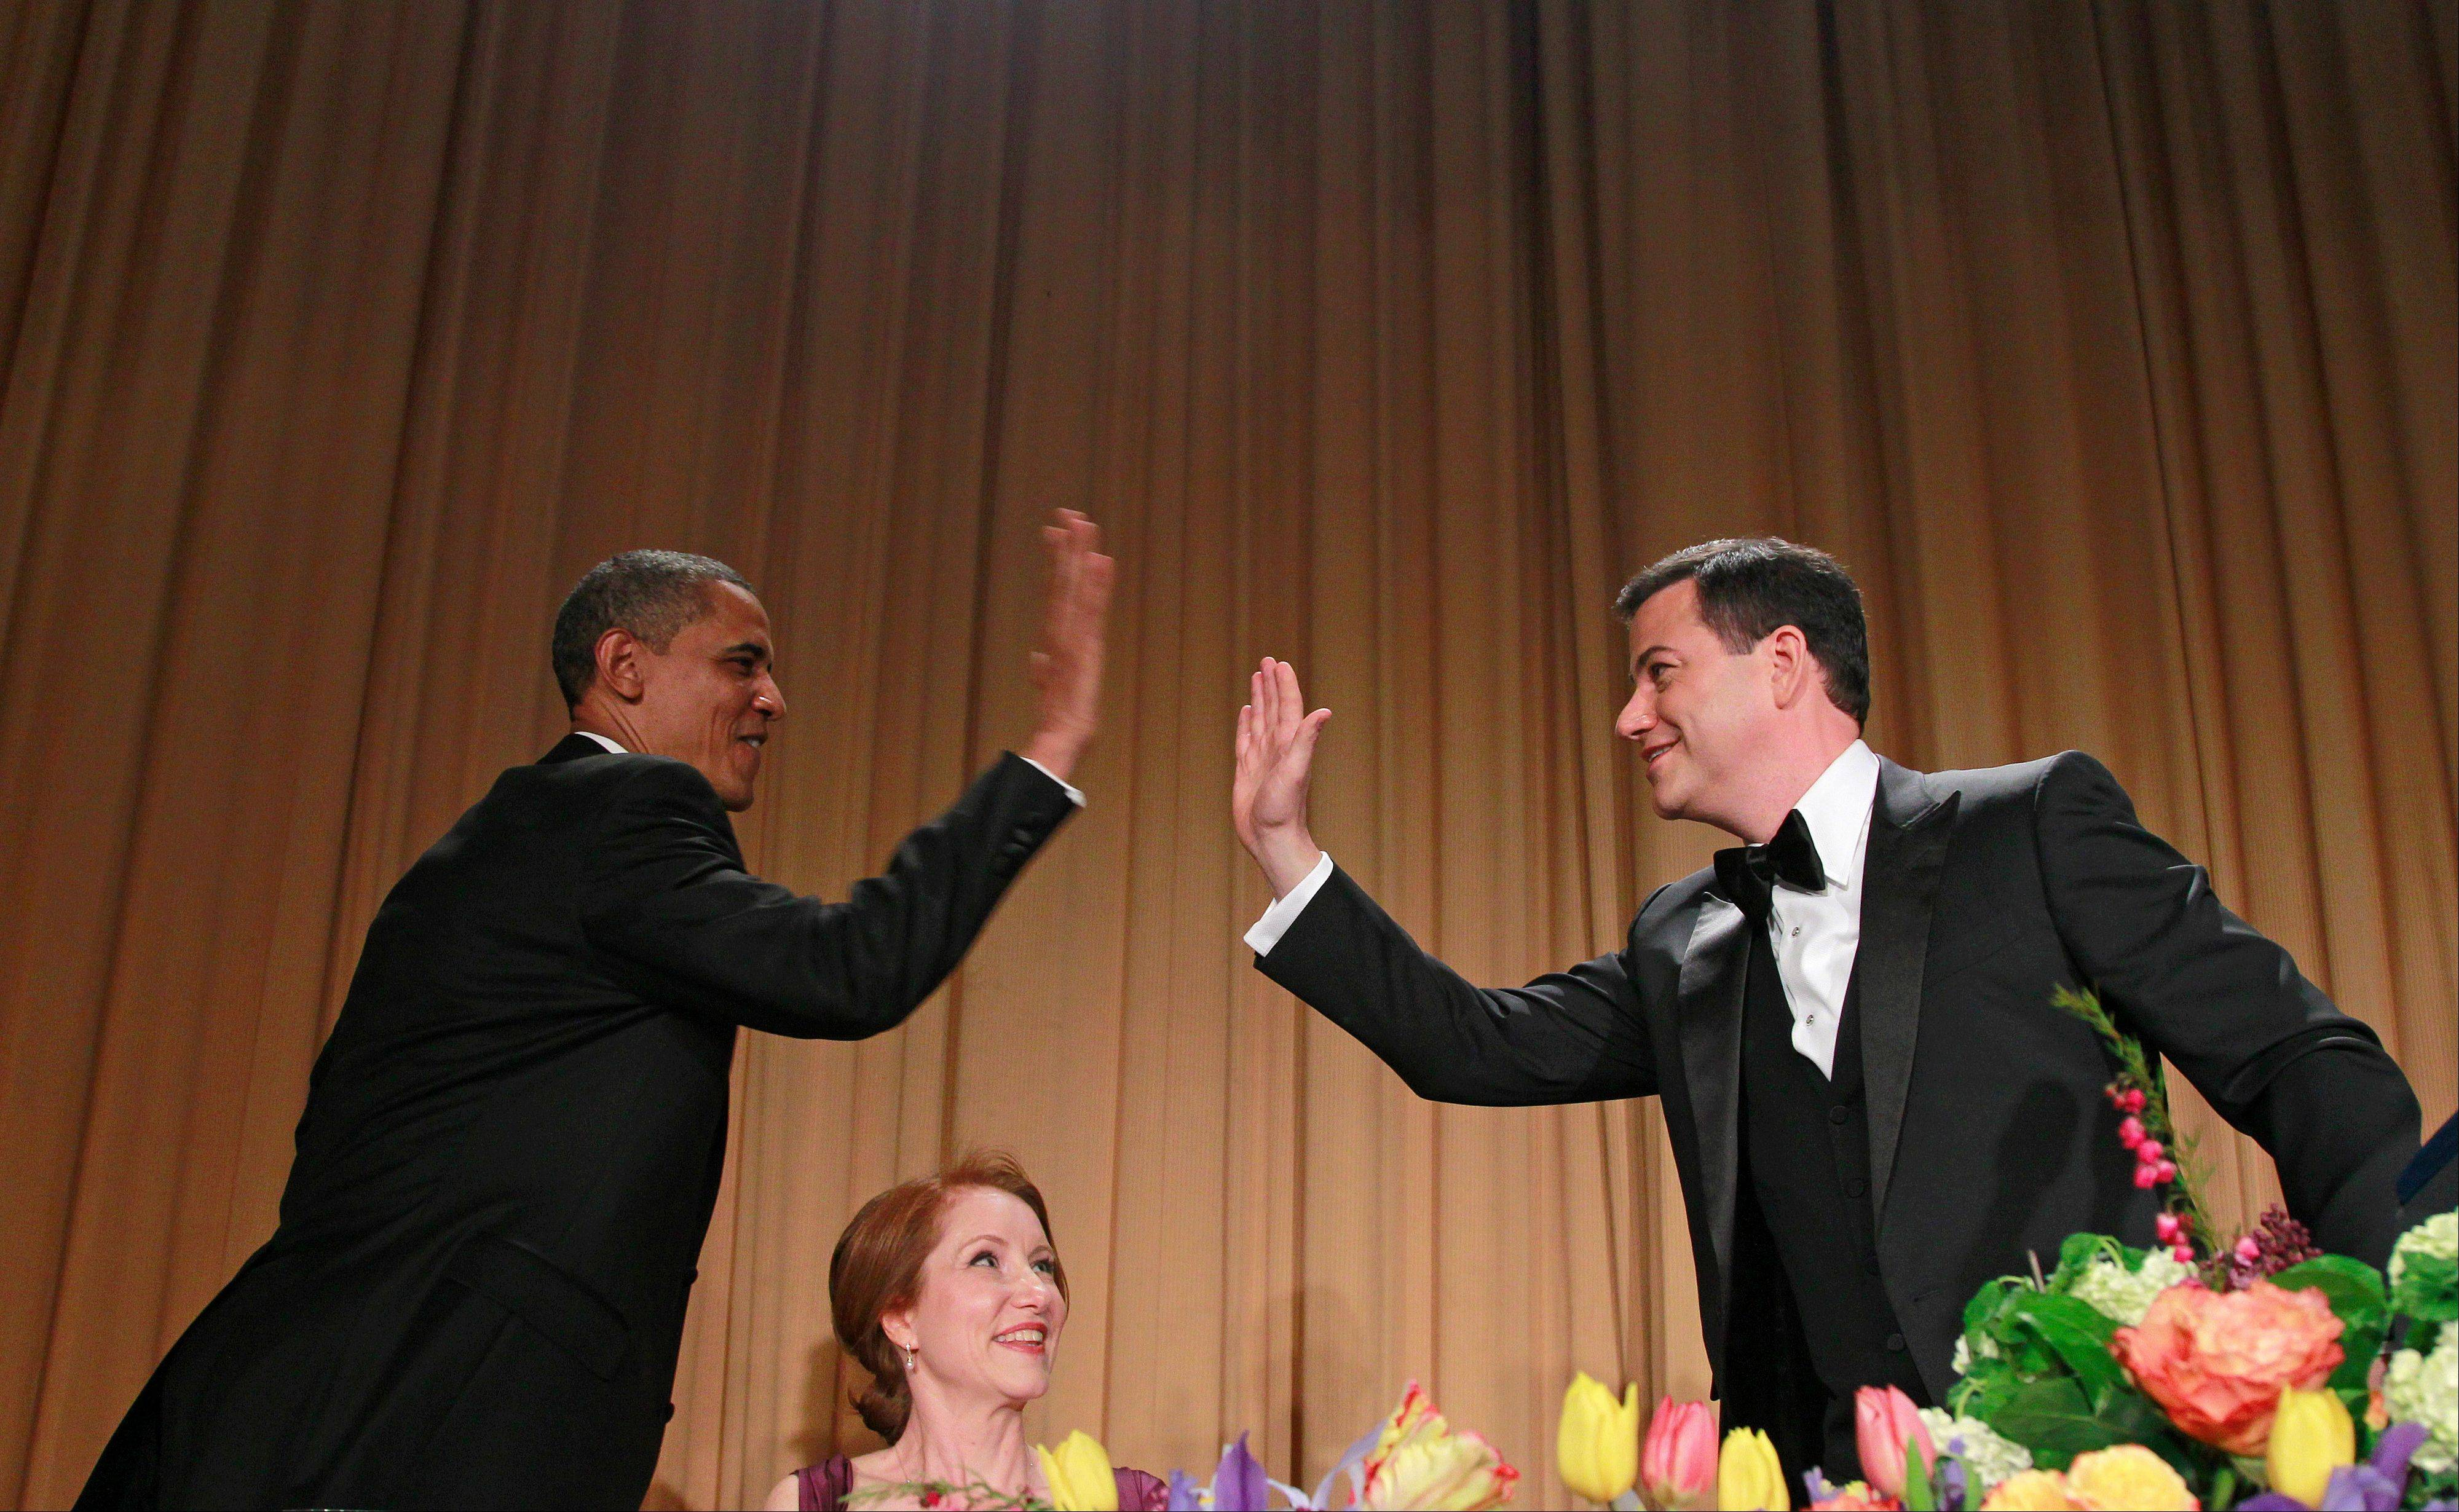 President Barack Obama high-fives late-night comic Jimmy Kimmel as Caren Bohan, a Reuters journalist and president of the White House Correspondents' Association looks on, during the White House Correspondents' Association Dinner on Saturday in Washington.